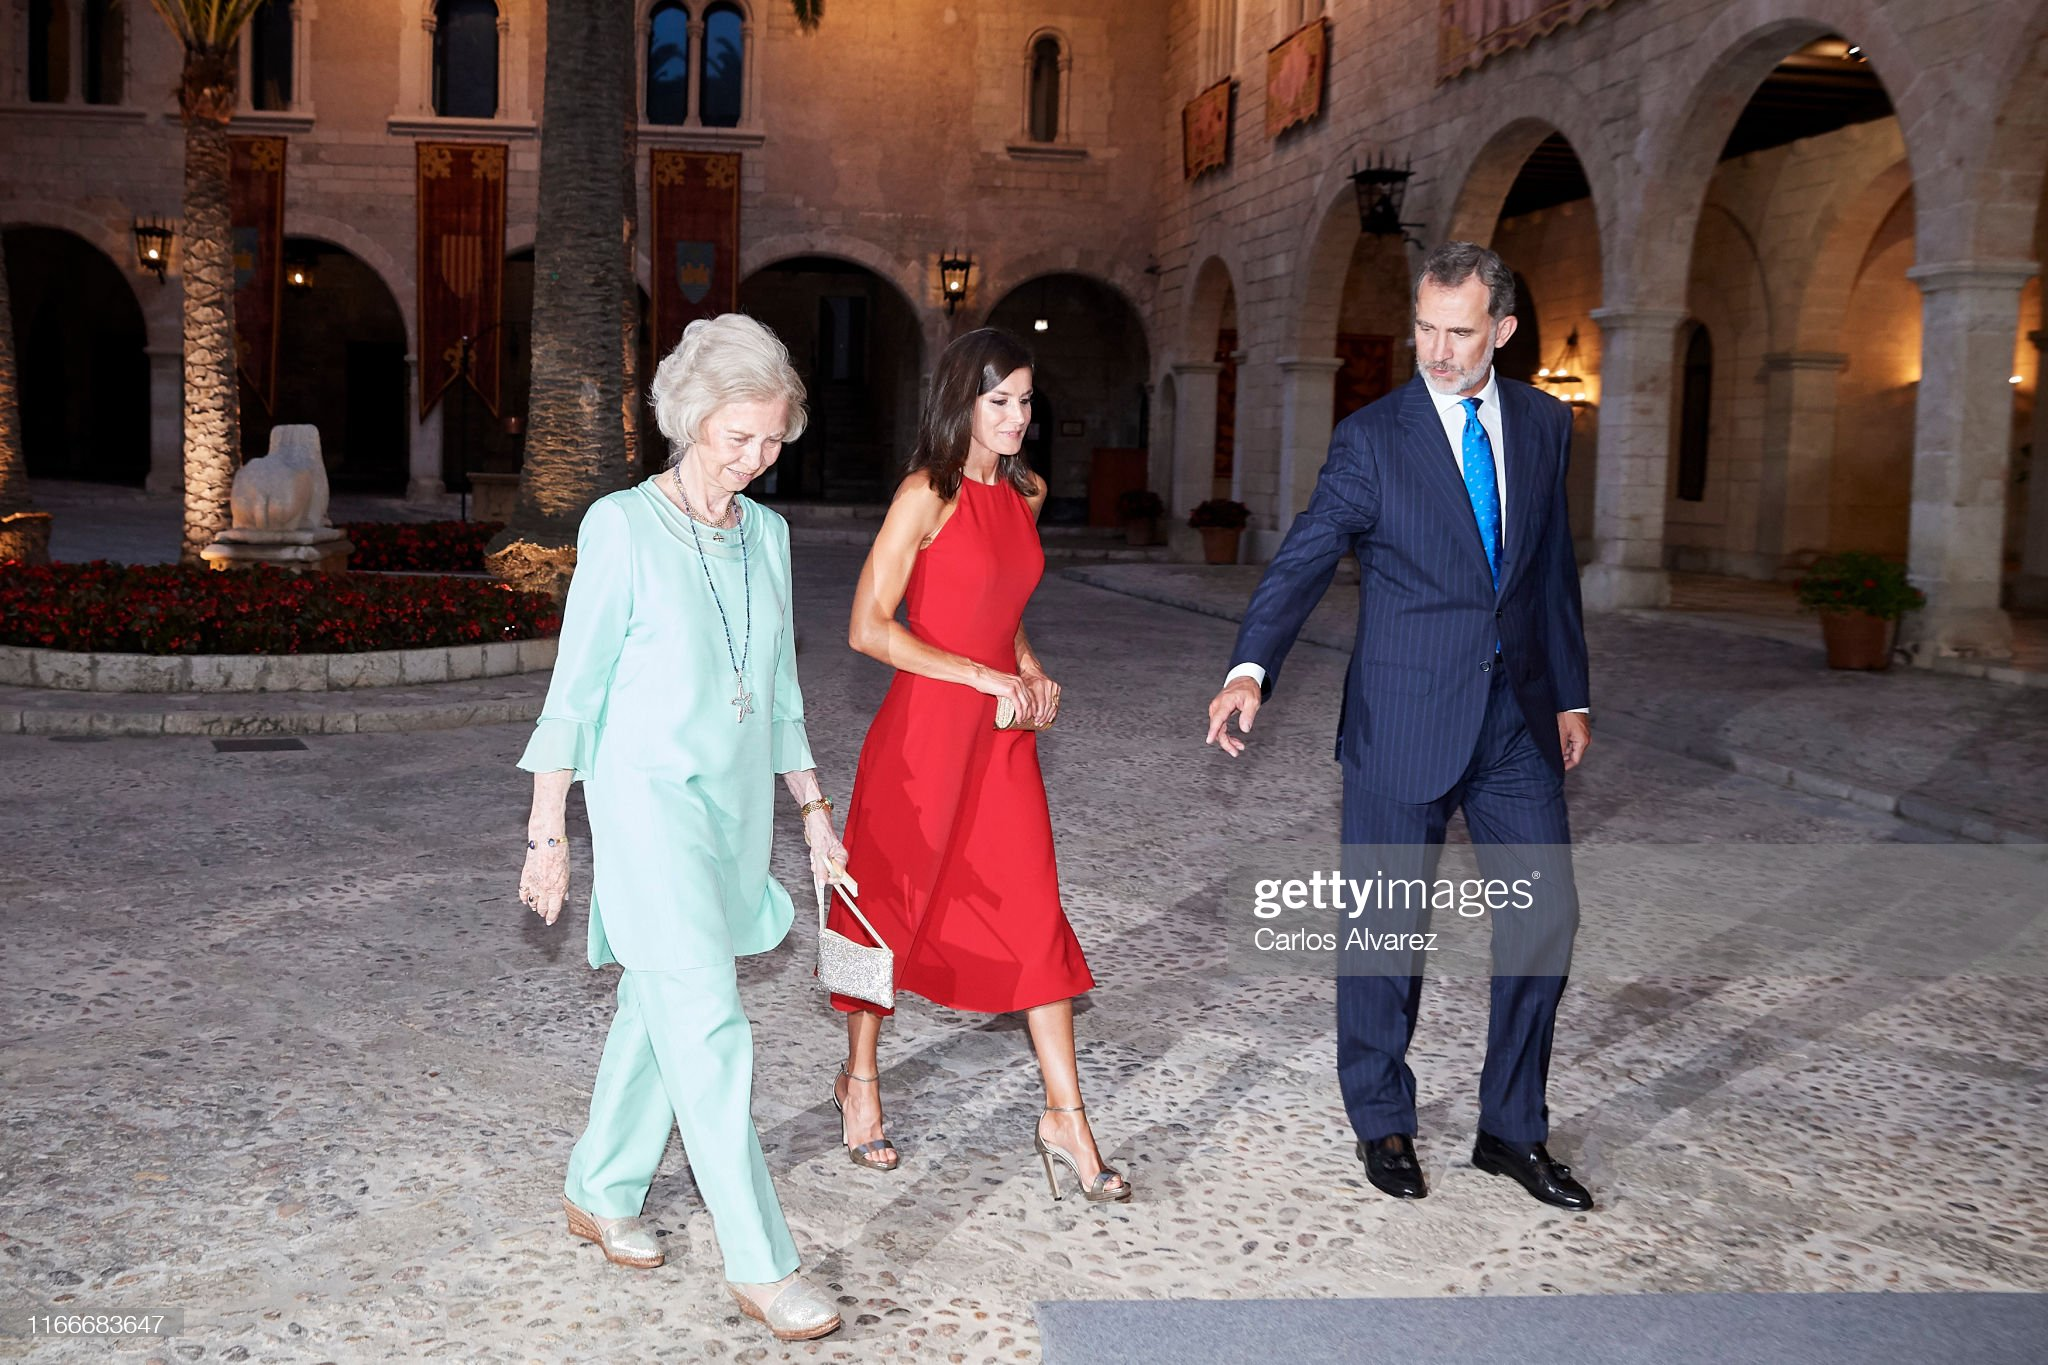 https://media.gettyimages.com/photos/king-felipe-vi-of-spain-queen-letizia-of-spain-and-queen-sofia-host-a-picture-id1166683647?s=2048x2048